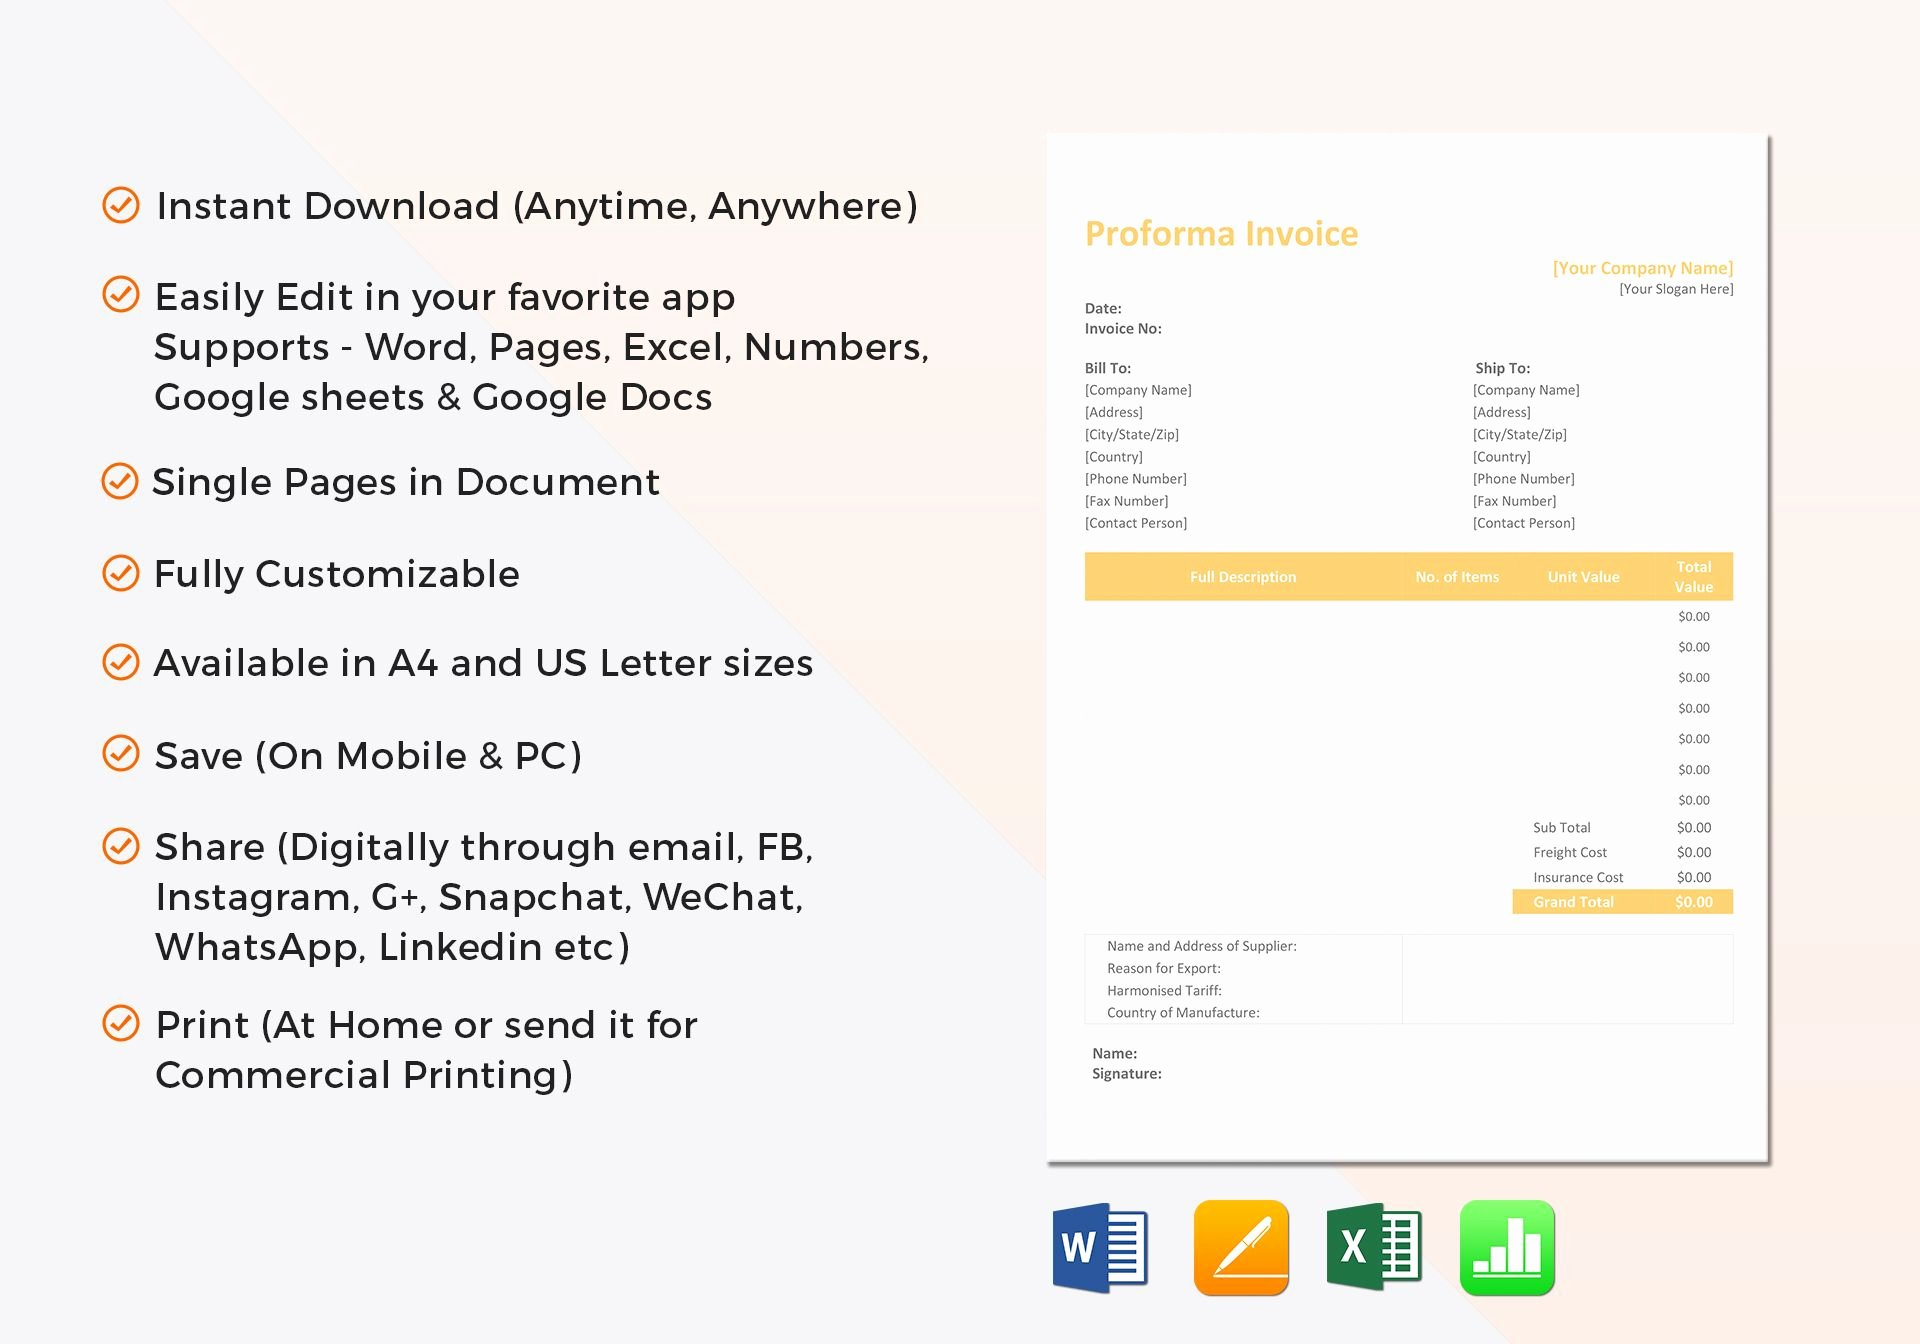 Proforma Invoice Template Excel Best Of Proforma Invoice Template In Word Excel Apple Pages Numbers